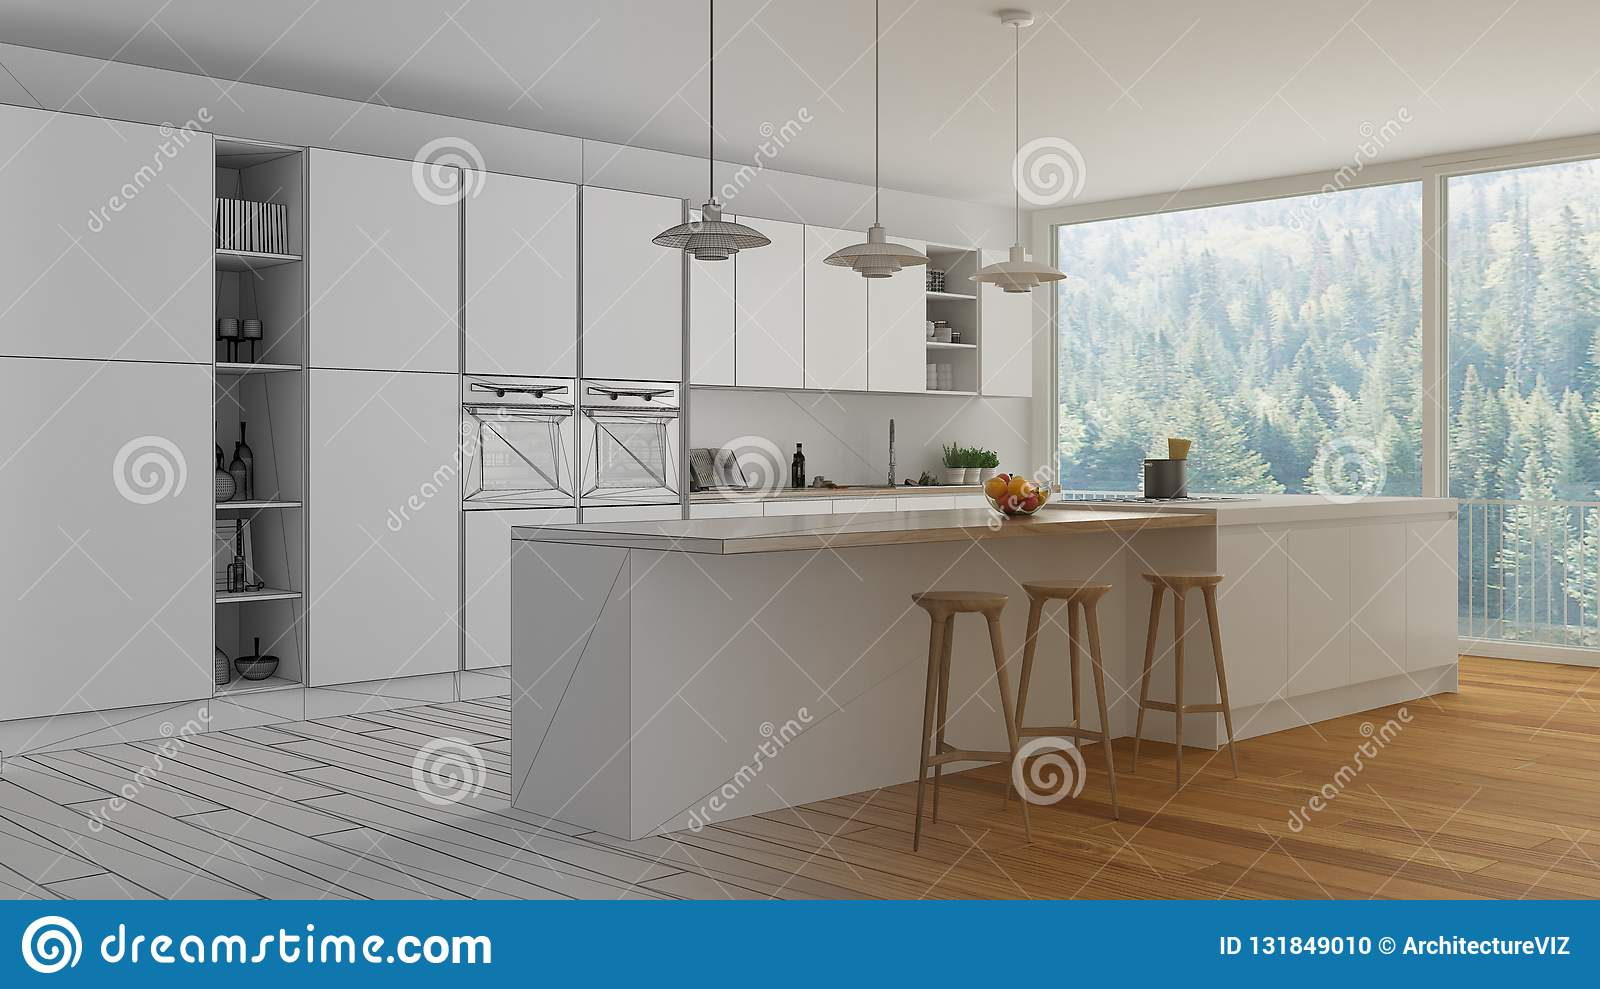 Unfinished Project Draft Of Modern Minimalist White And ...